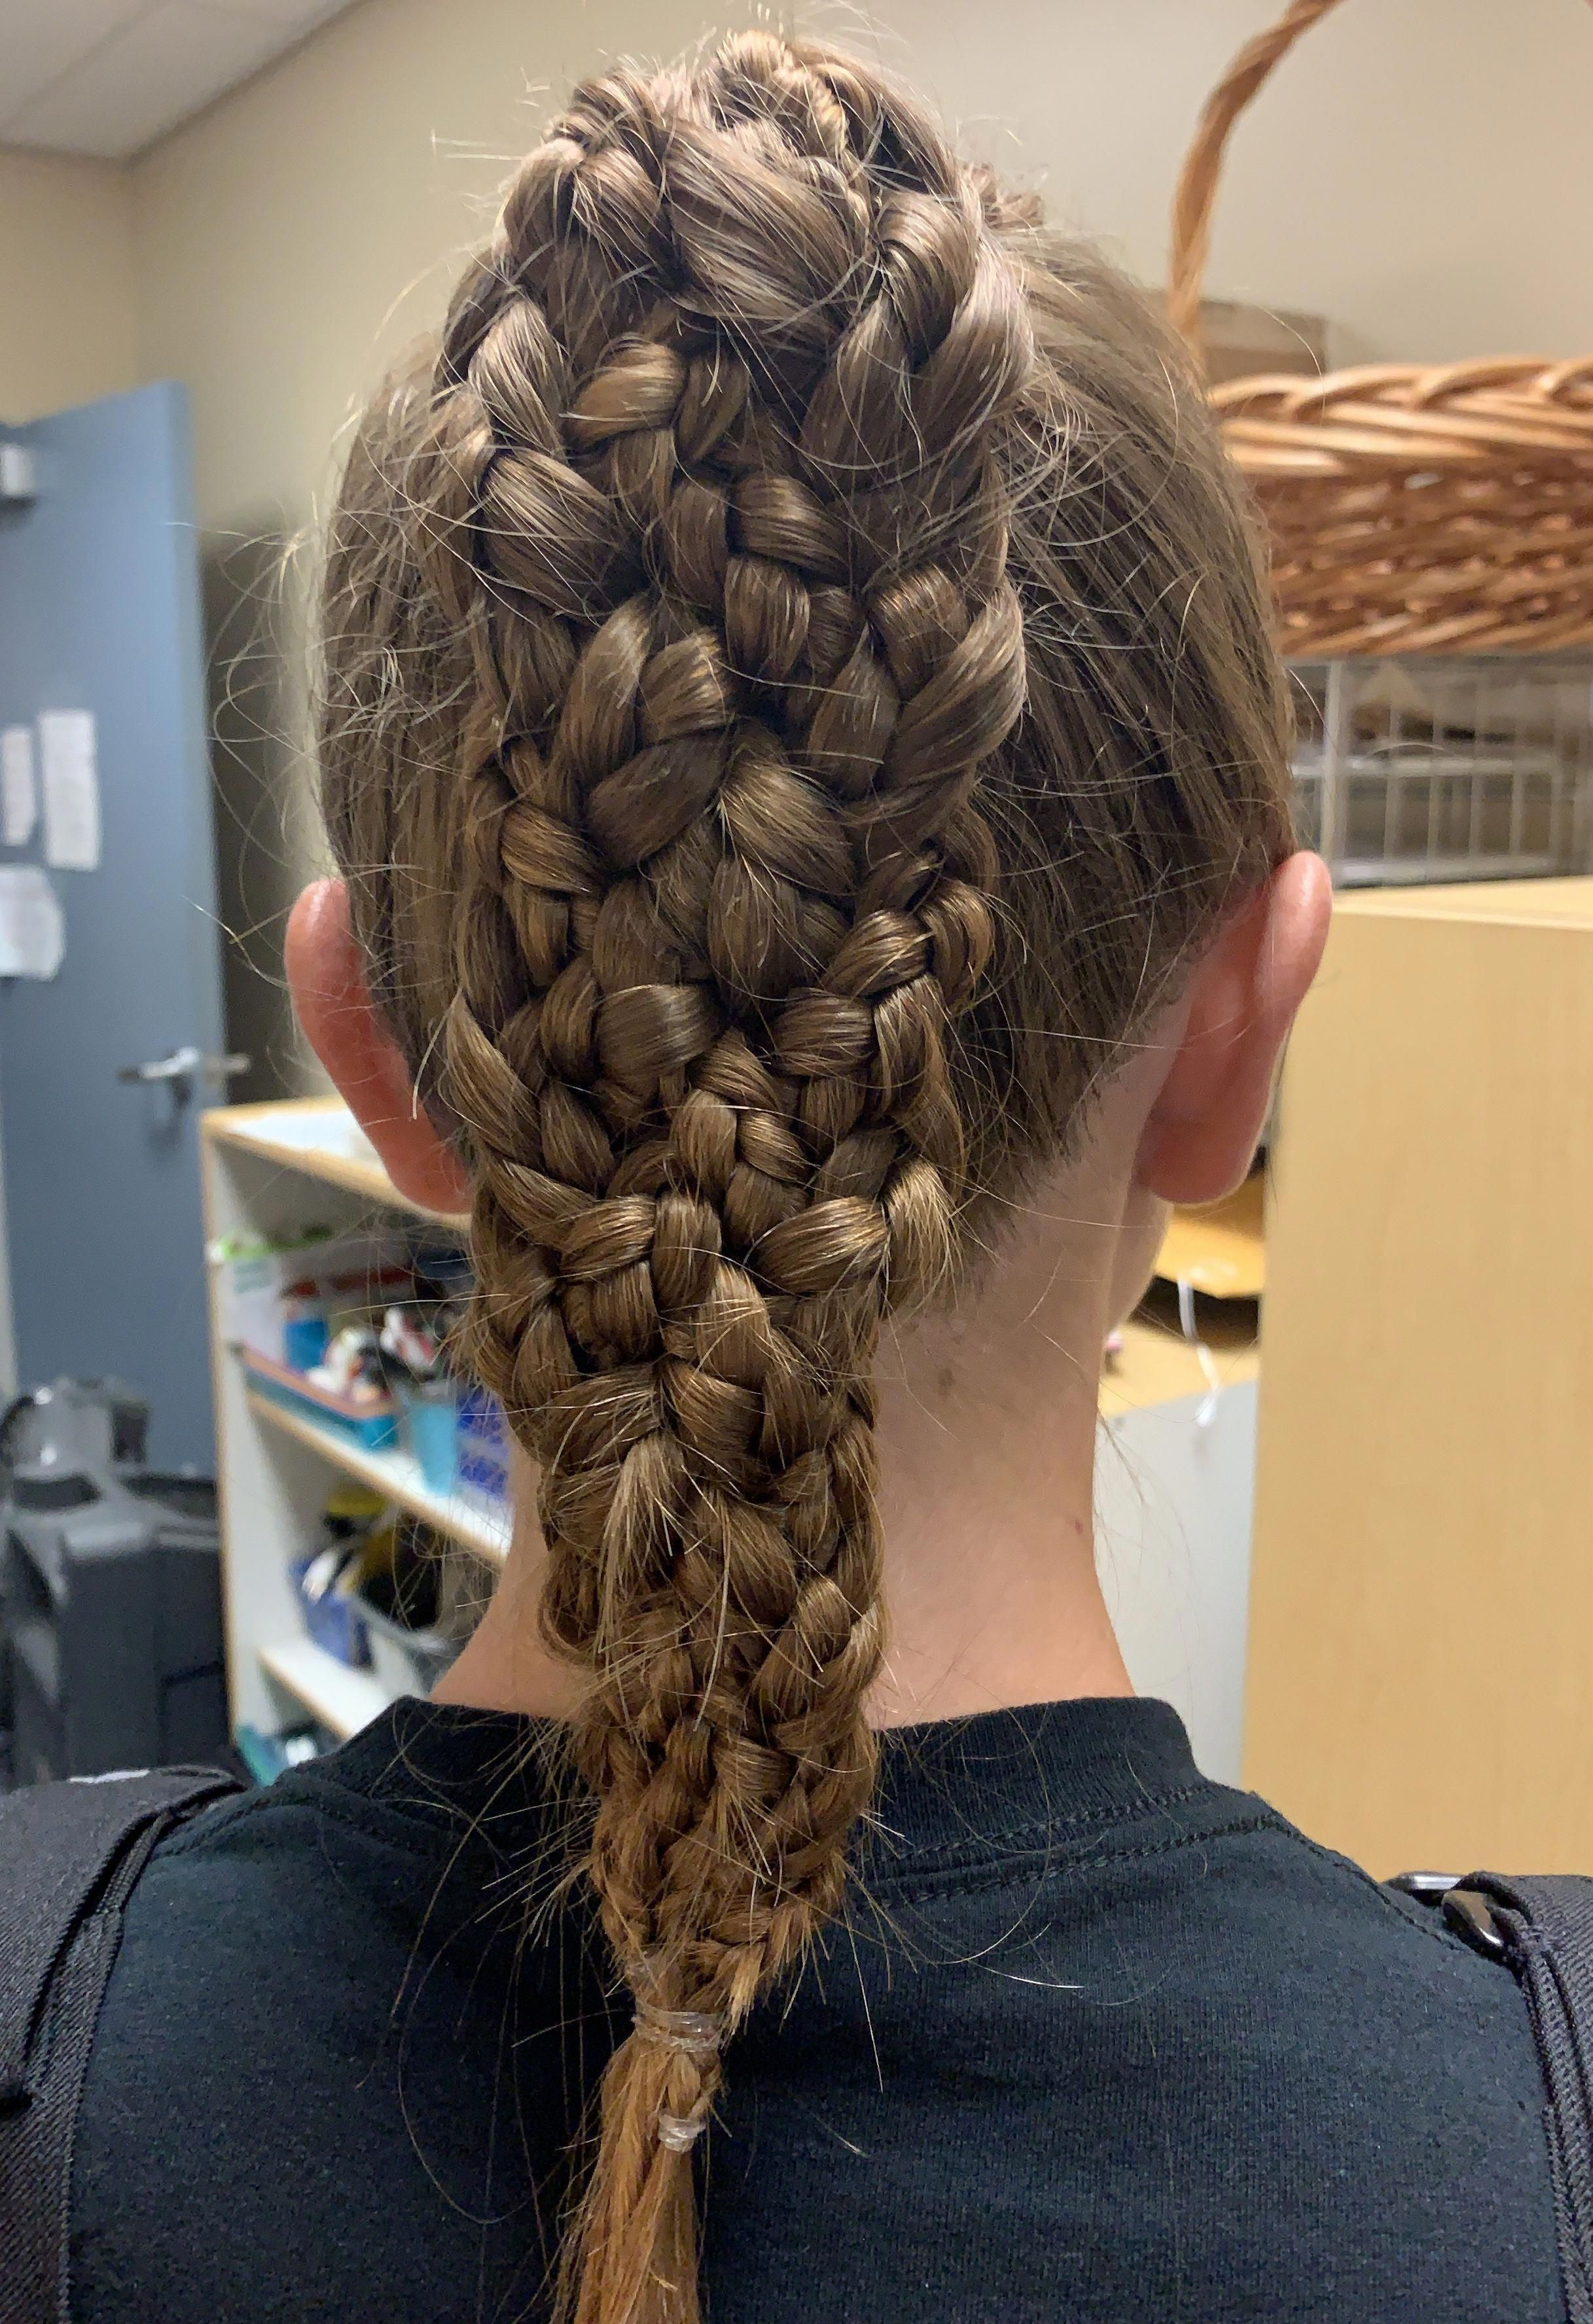 5strand Braid Braids Braids With Extensions Cost Dutch Ponytail Popular New No Cost In 2020 Braids With Extensions Braided Ponytail Braided Hairstyles